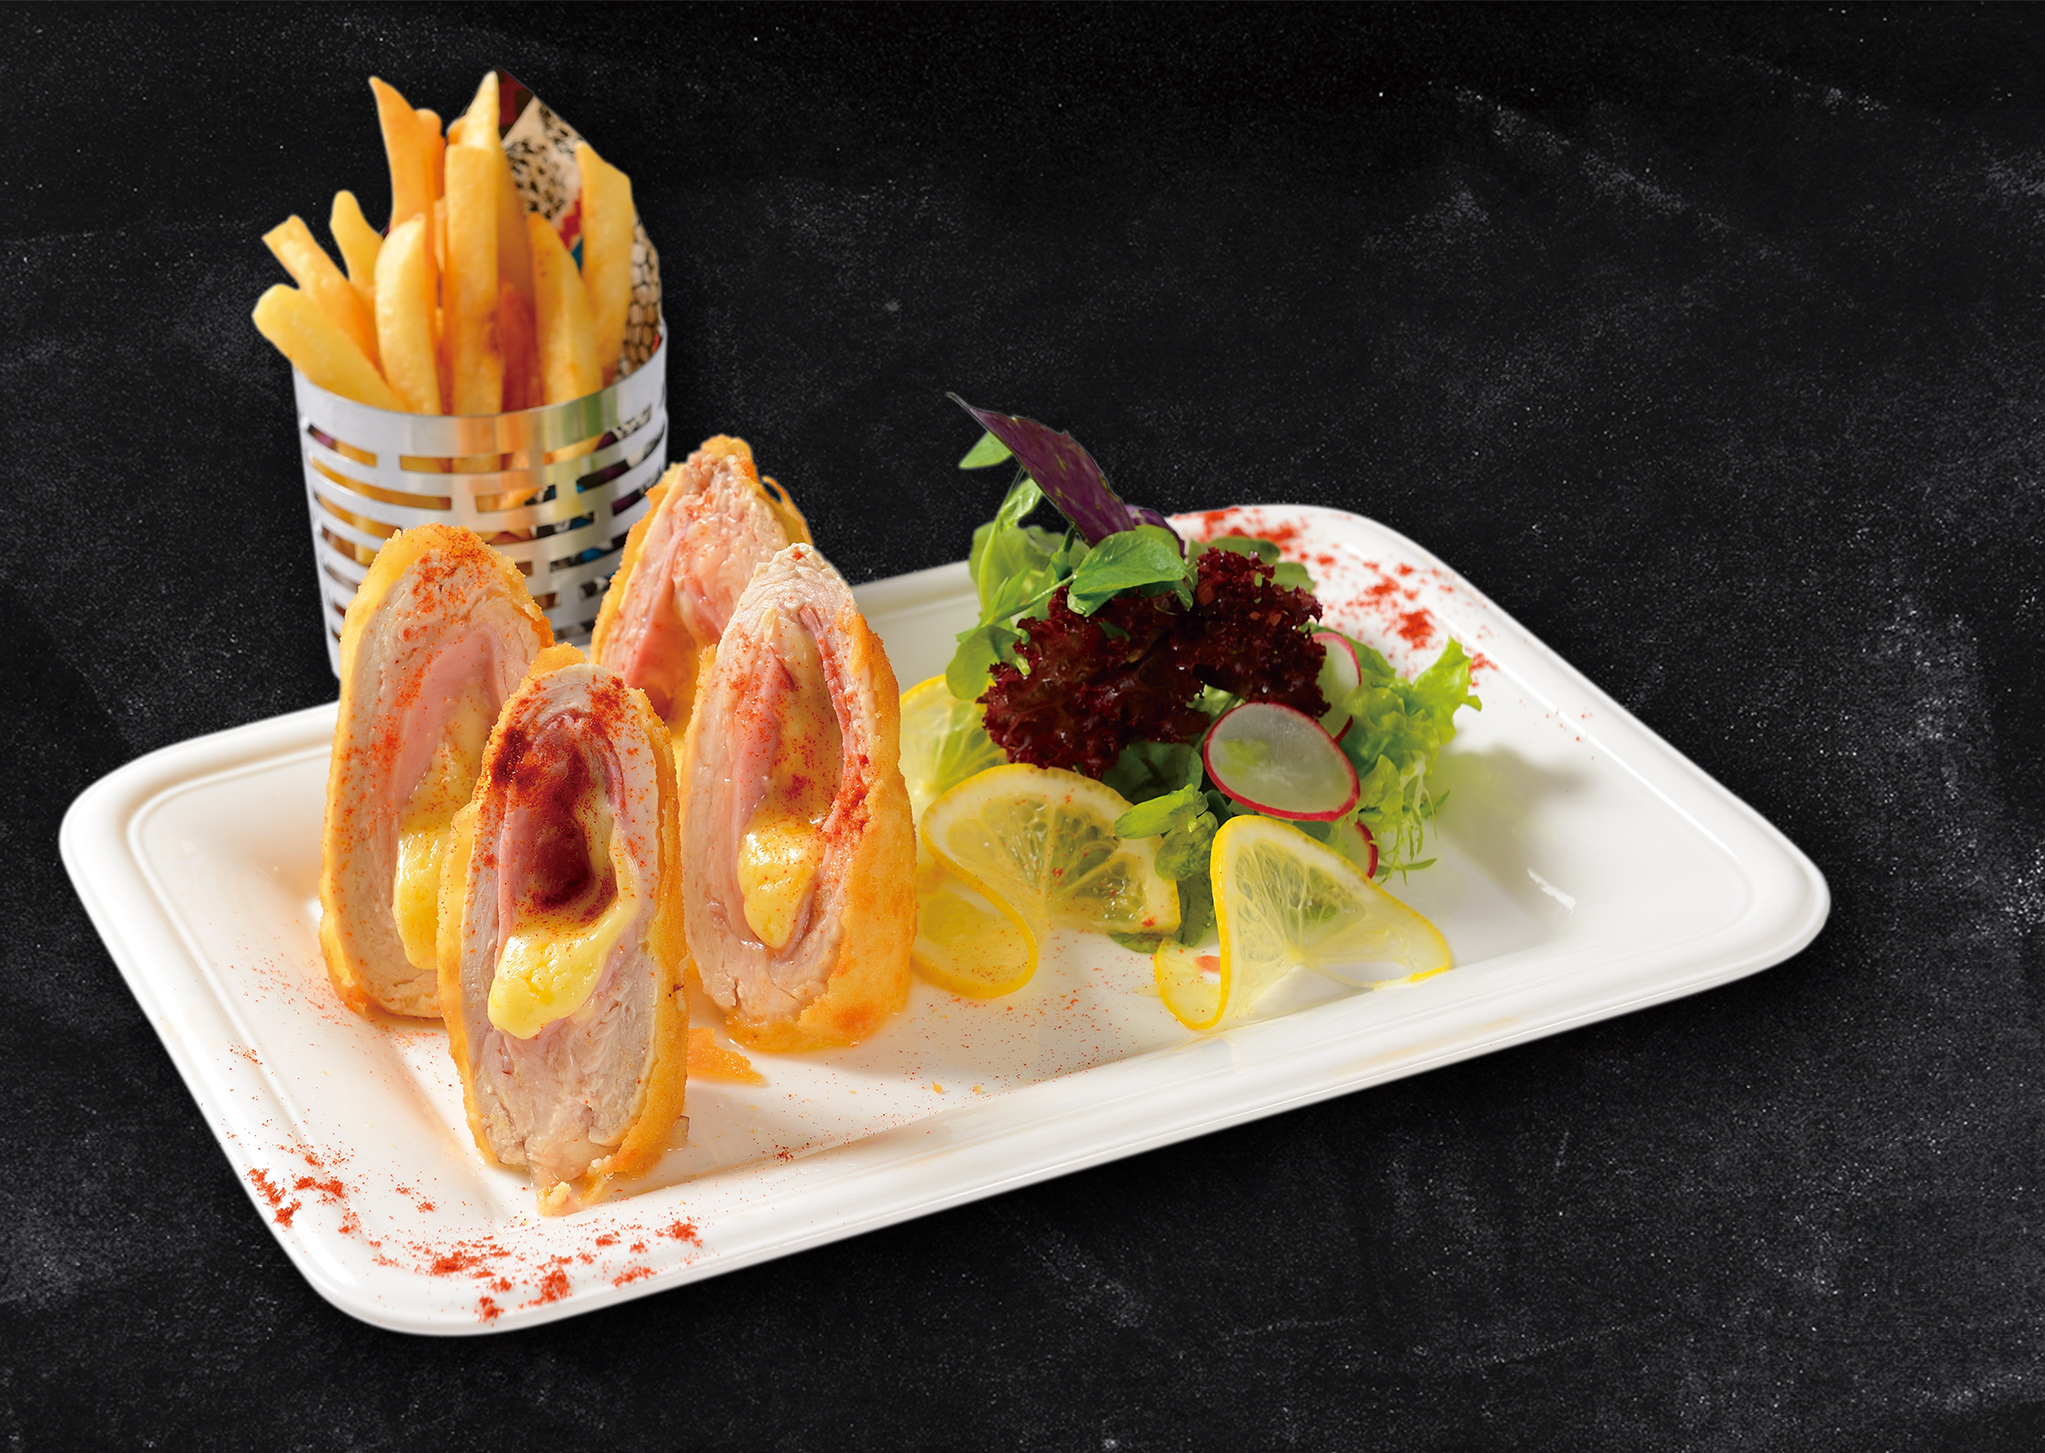 <b>Chicken Cordon Bleu</b><br/>Two Breaded Chicken Breasts Stuffed with